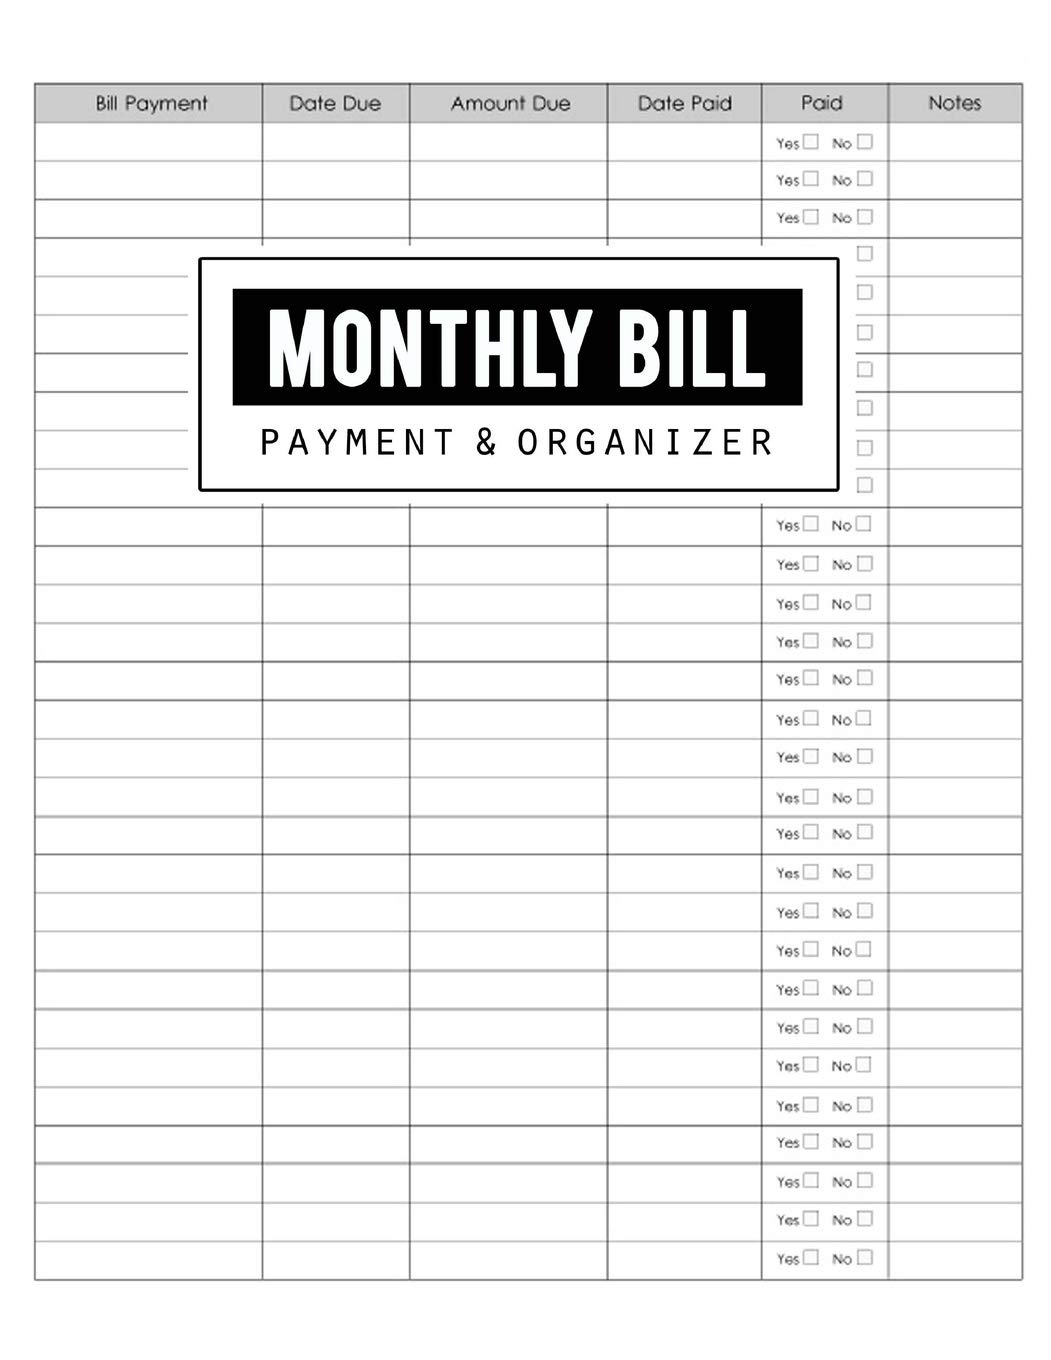 Full Size of Monthly Bill Payment Organizer Money Debt Tracker Simple Home Budget Spreadsheet Planner